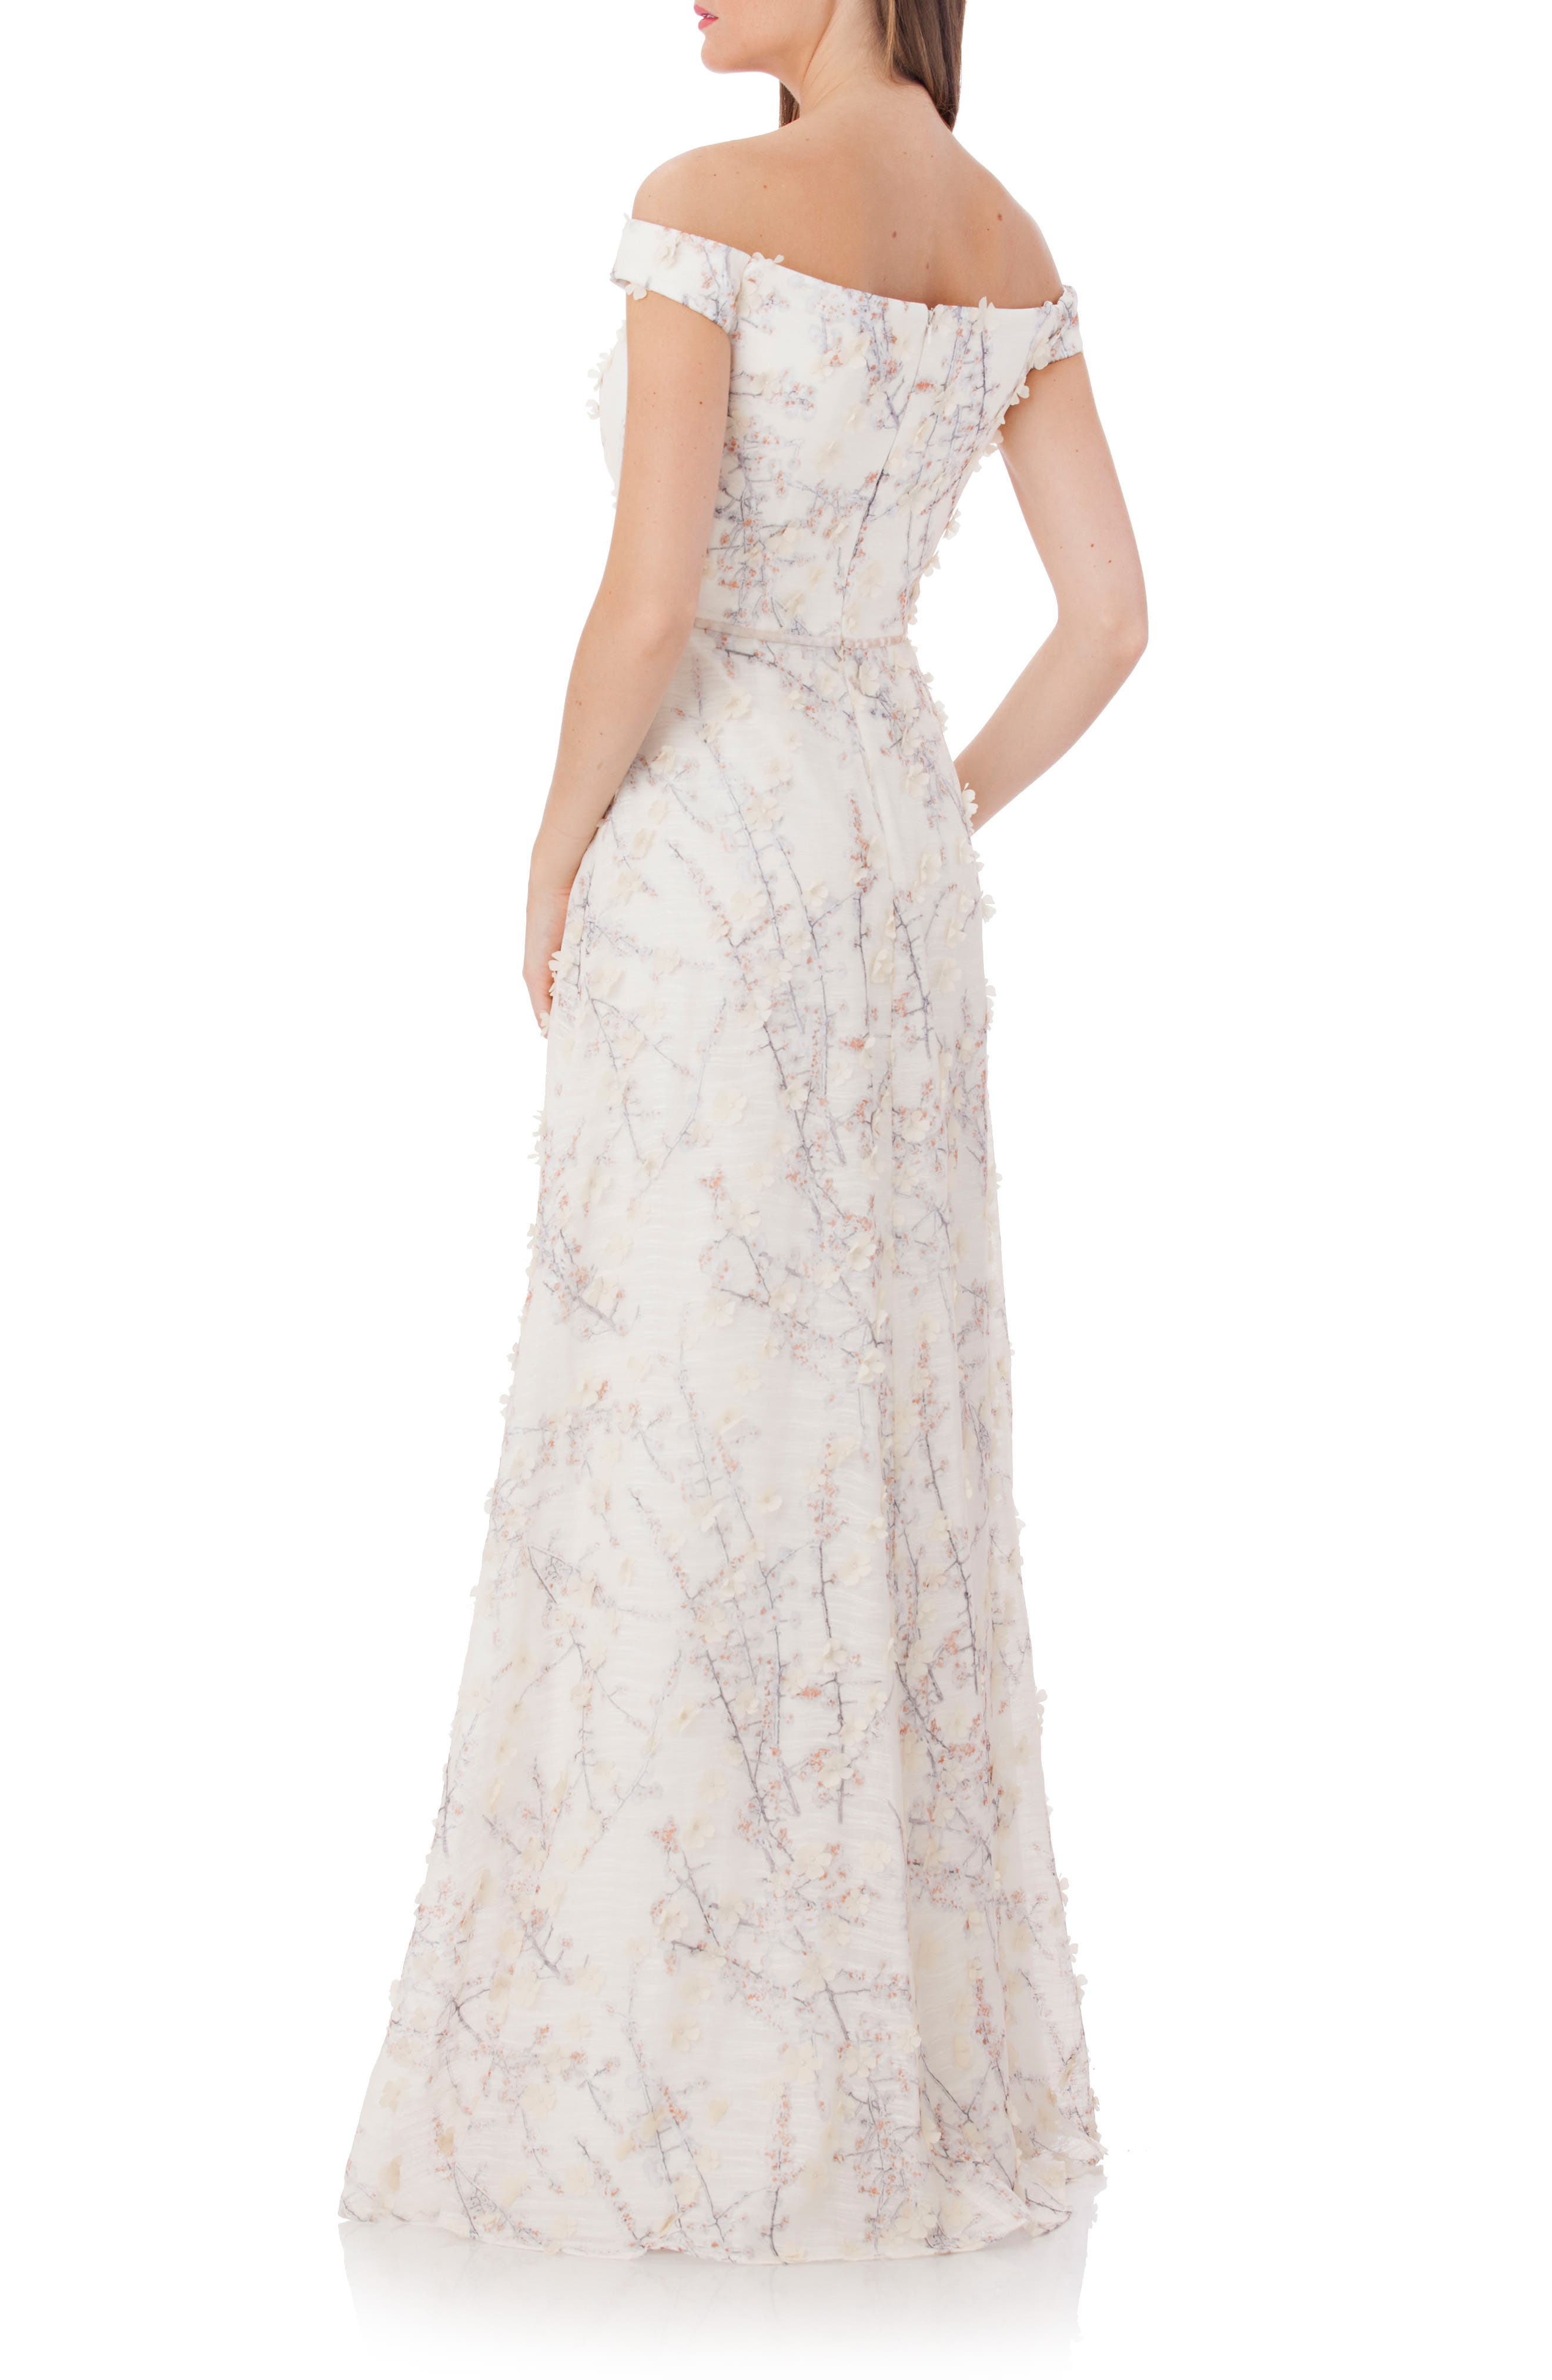 3D Embroidery Off the Shoulder Gown,                             Alternate thumbnail 2, color,                             Champagne